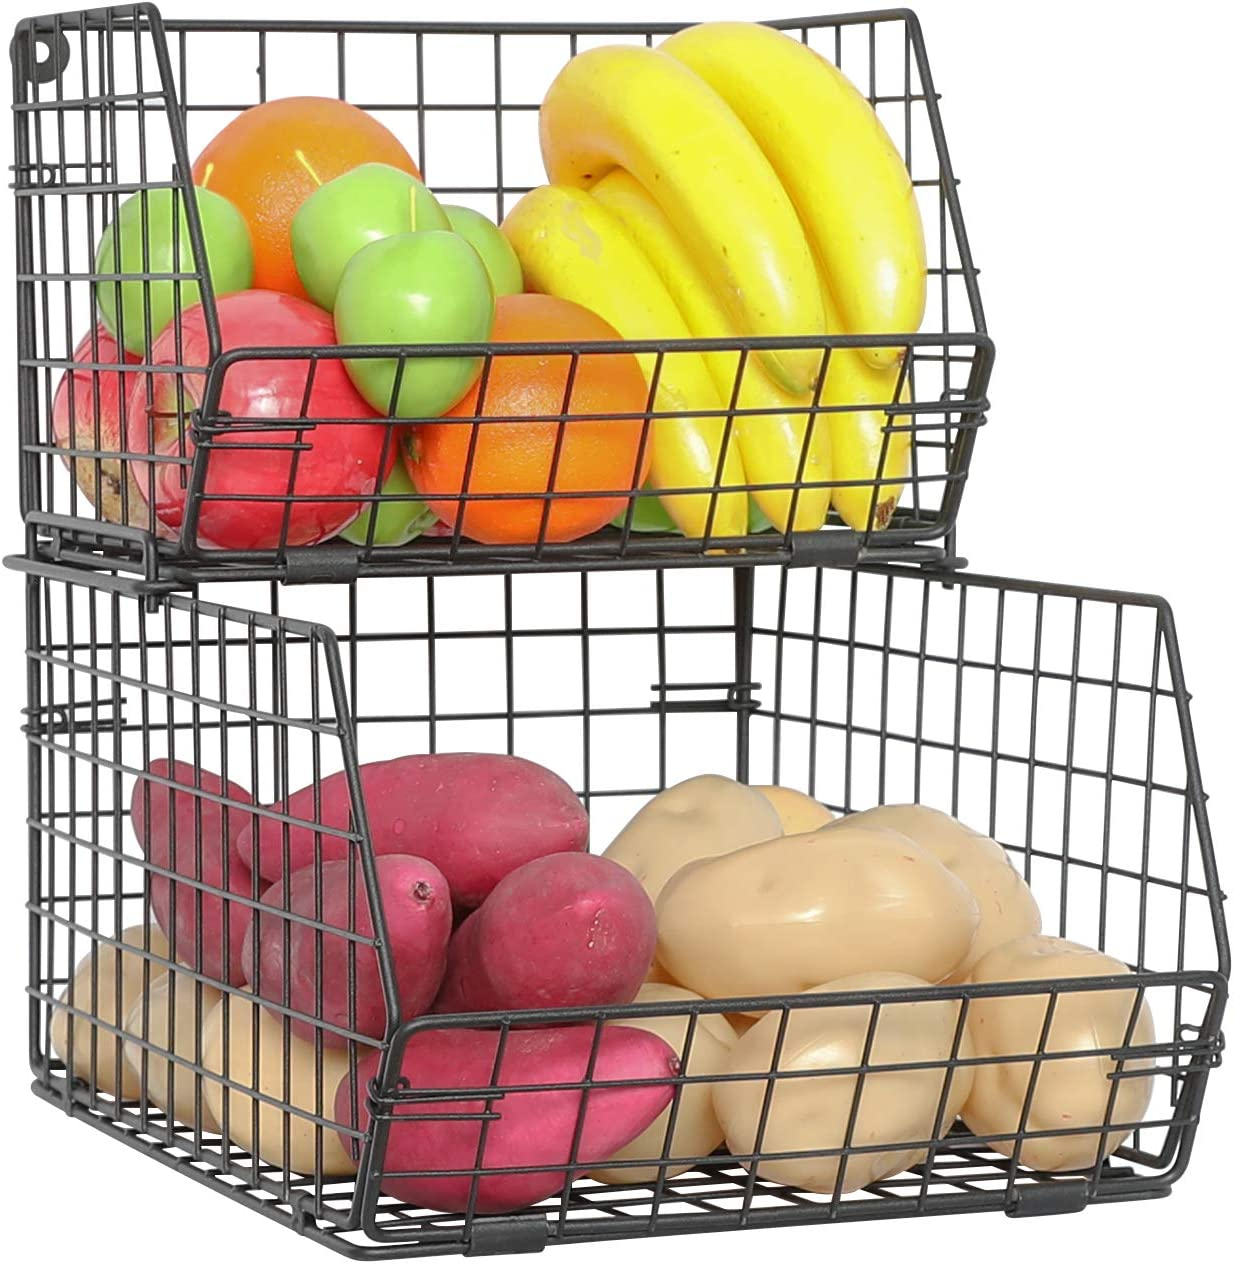 X-cosrack Fruit and Vegetable Basket,2-Tier Wall-mounted & Countertop Tiered Baskets for Potato Onion Storage,Stackable Kitchen Wire Storage Baskets for Fruit Veggies Produce Snack Canned Foods